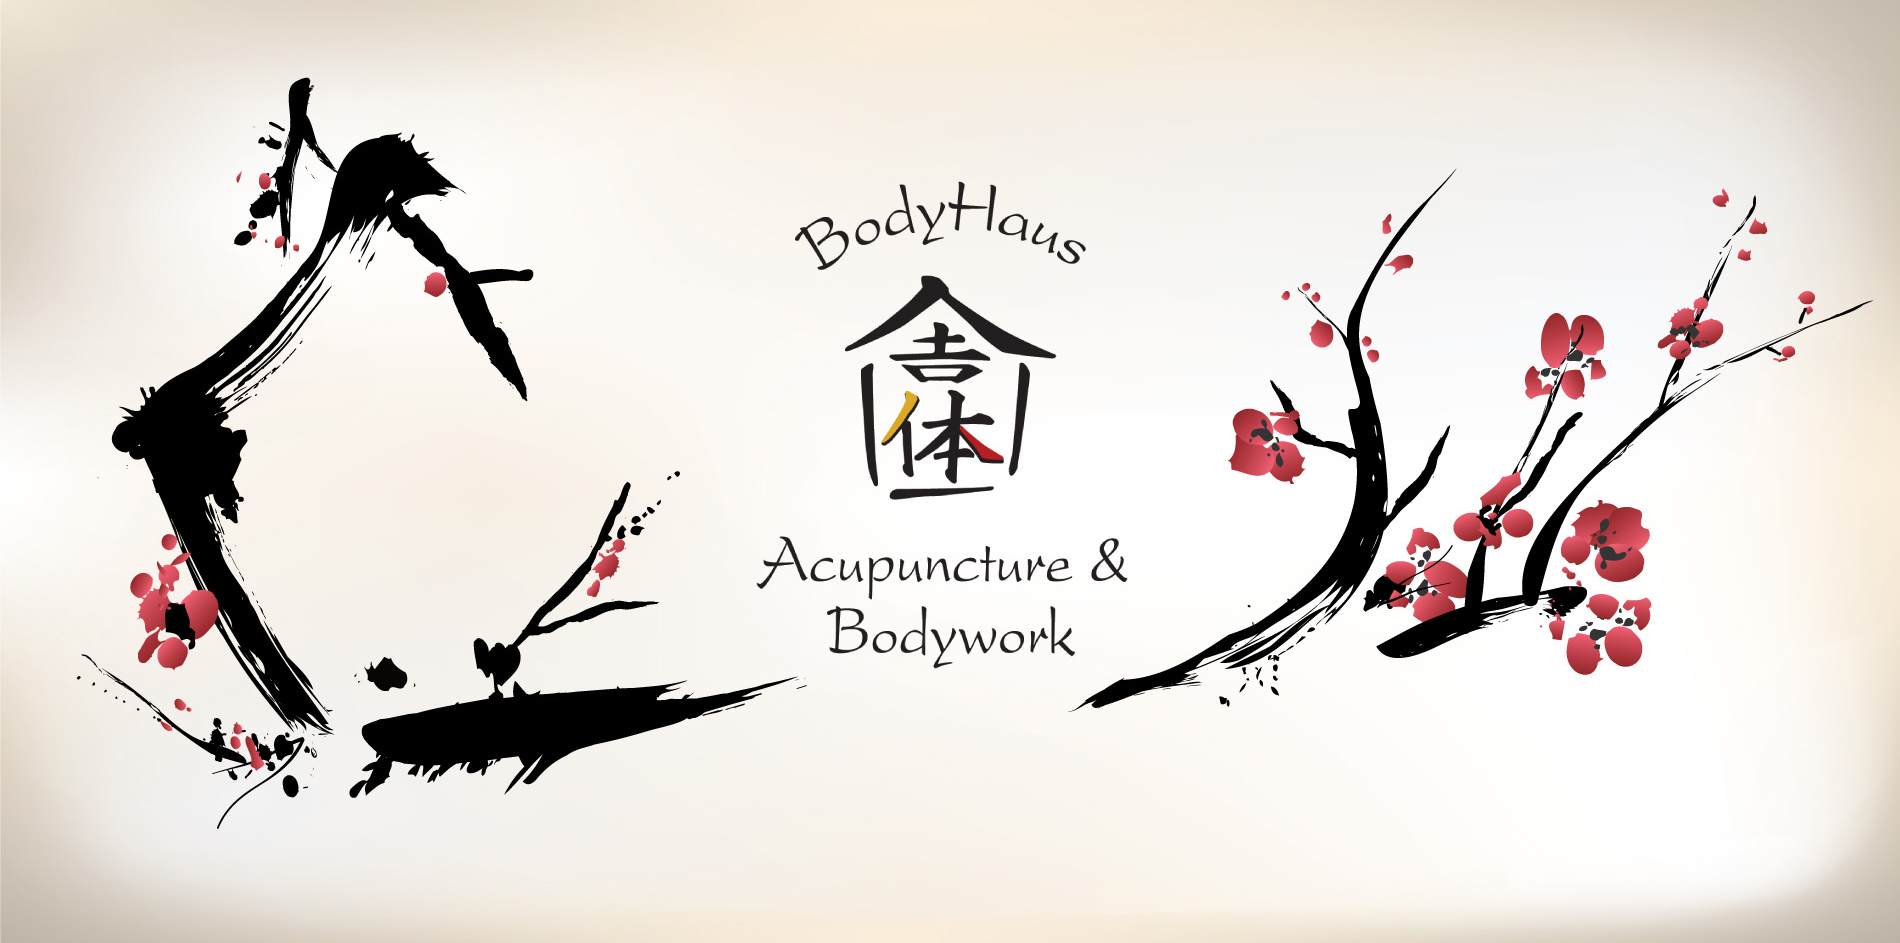 BodyHaus Acupuncture and Bodywork